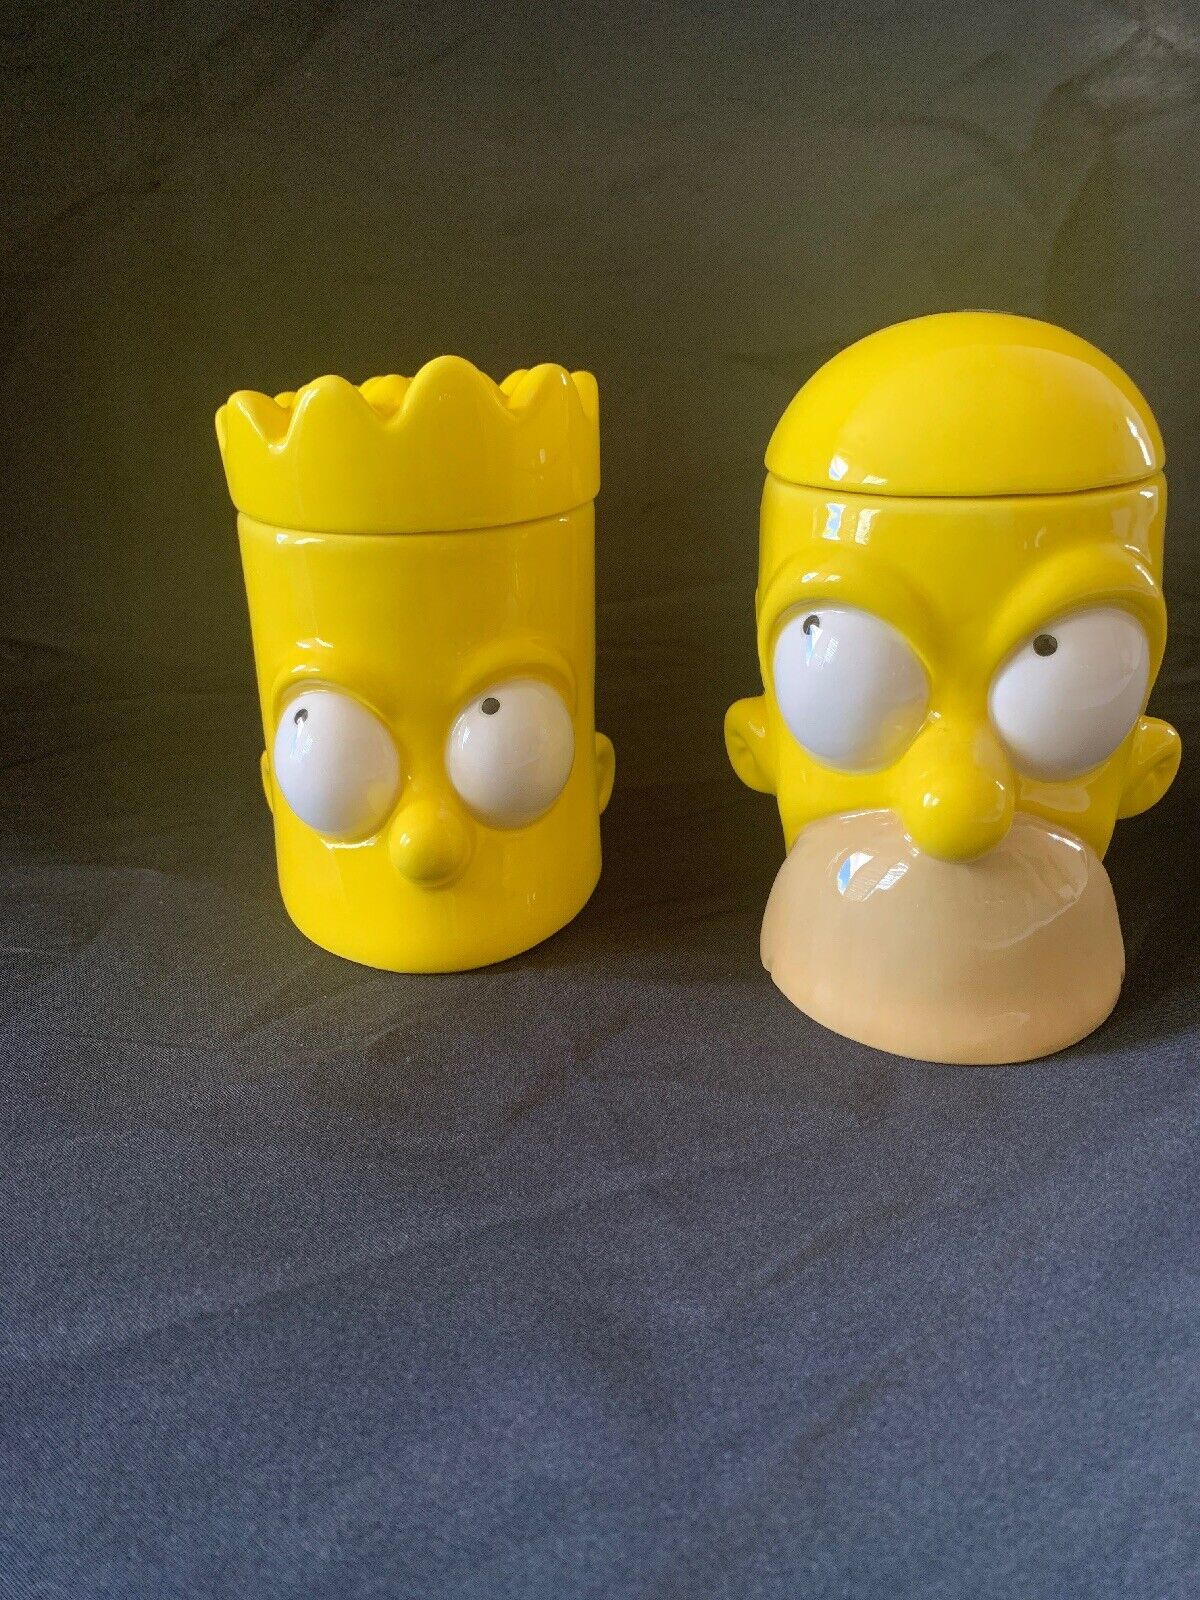 Simpsons Homer And Bart Mugs With Lids (Decorative Purposes Only) EXTREMELY RARE